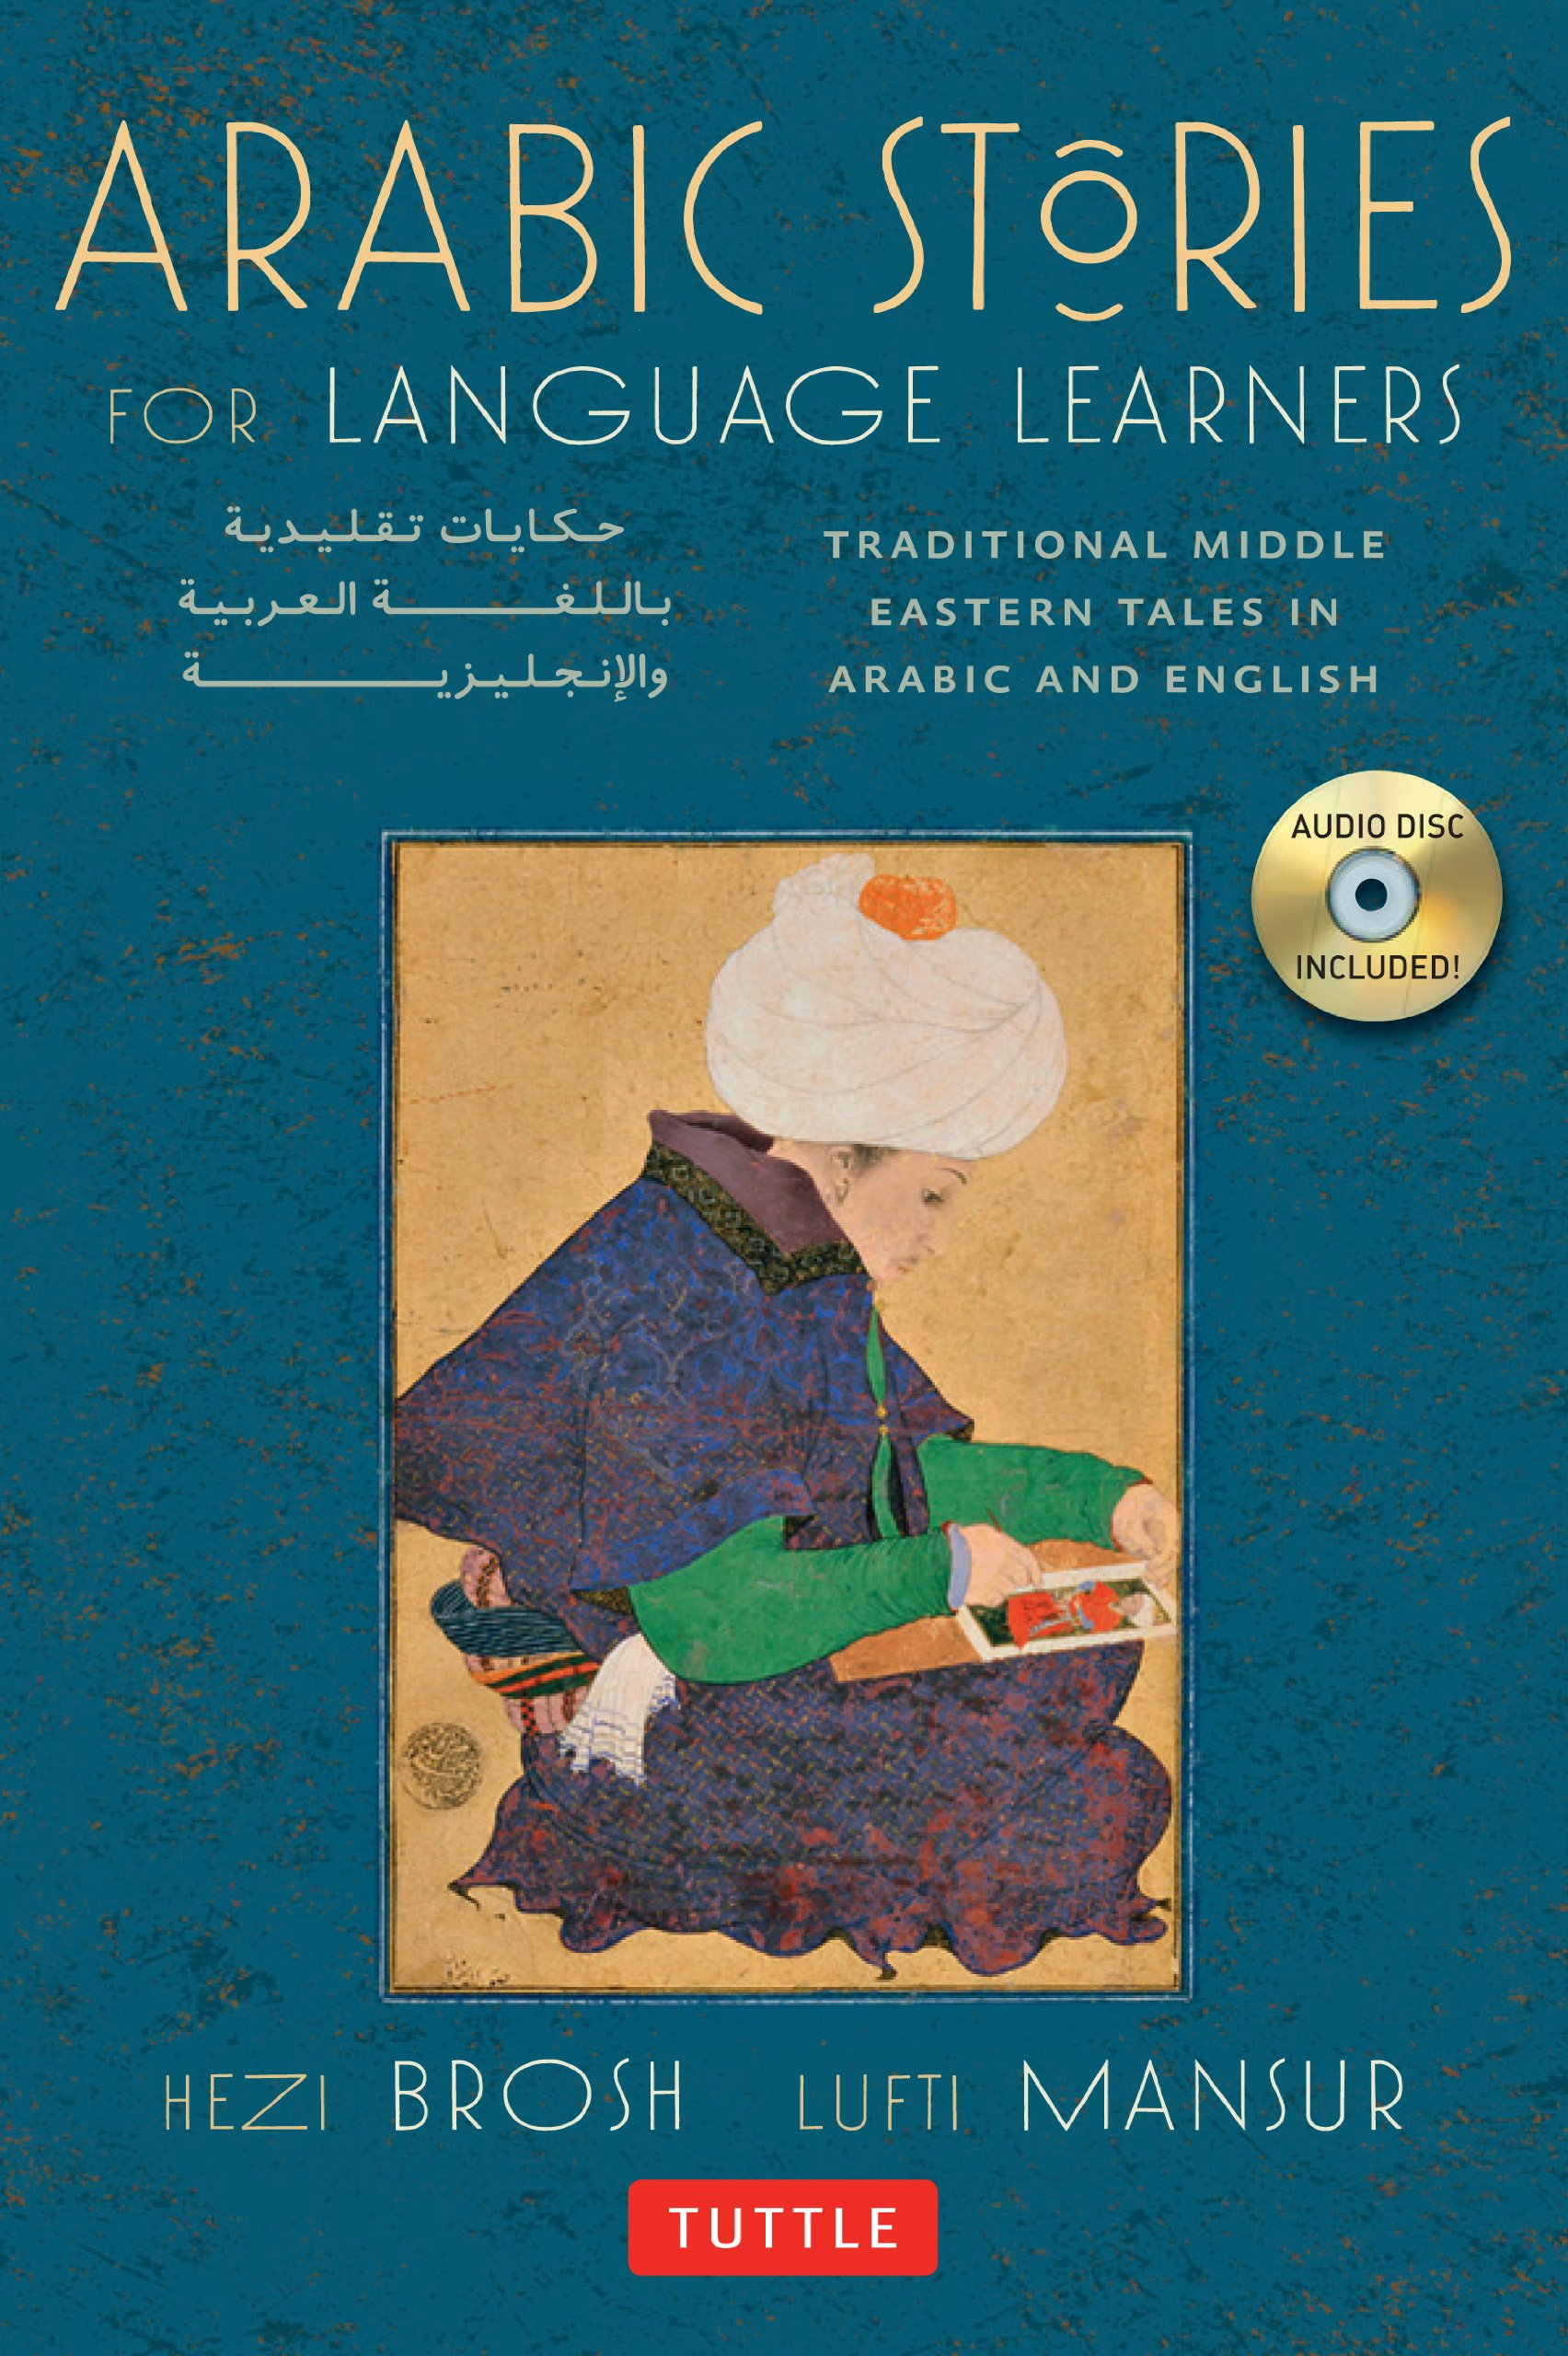 Arabic Stories for Language Learners: Traditional Middle Eastern Tales In Arabic and English (Audio CD Included) by Tuttle Publishing